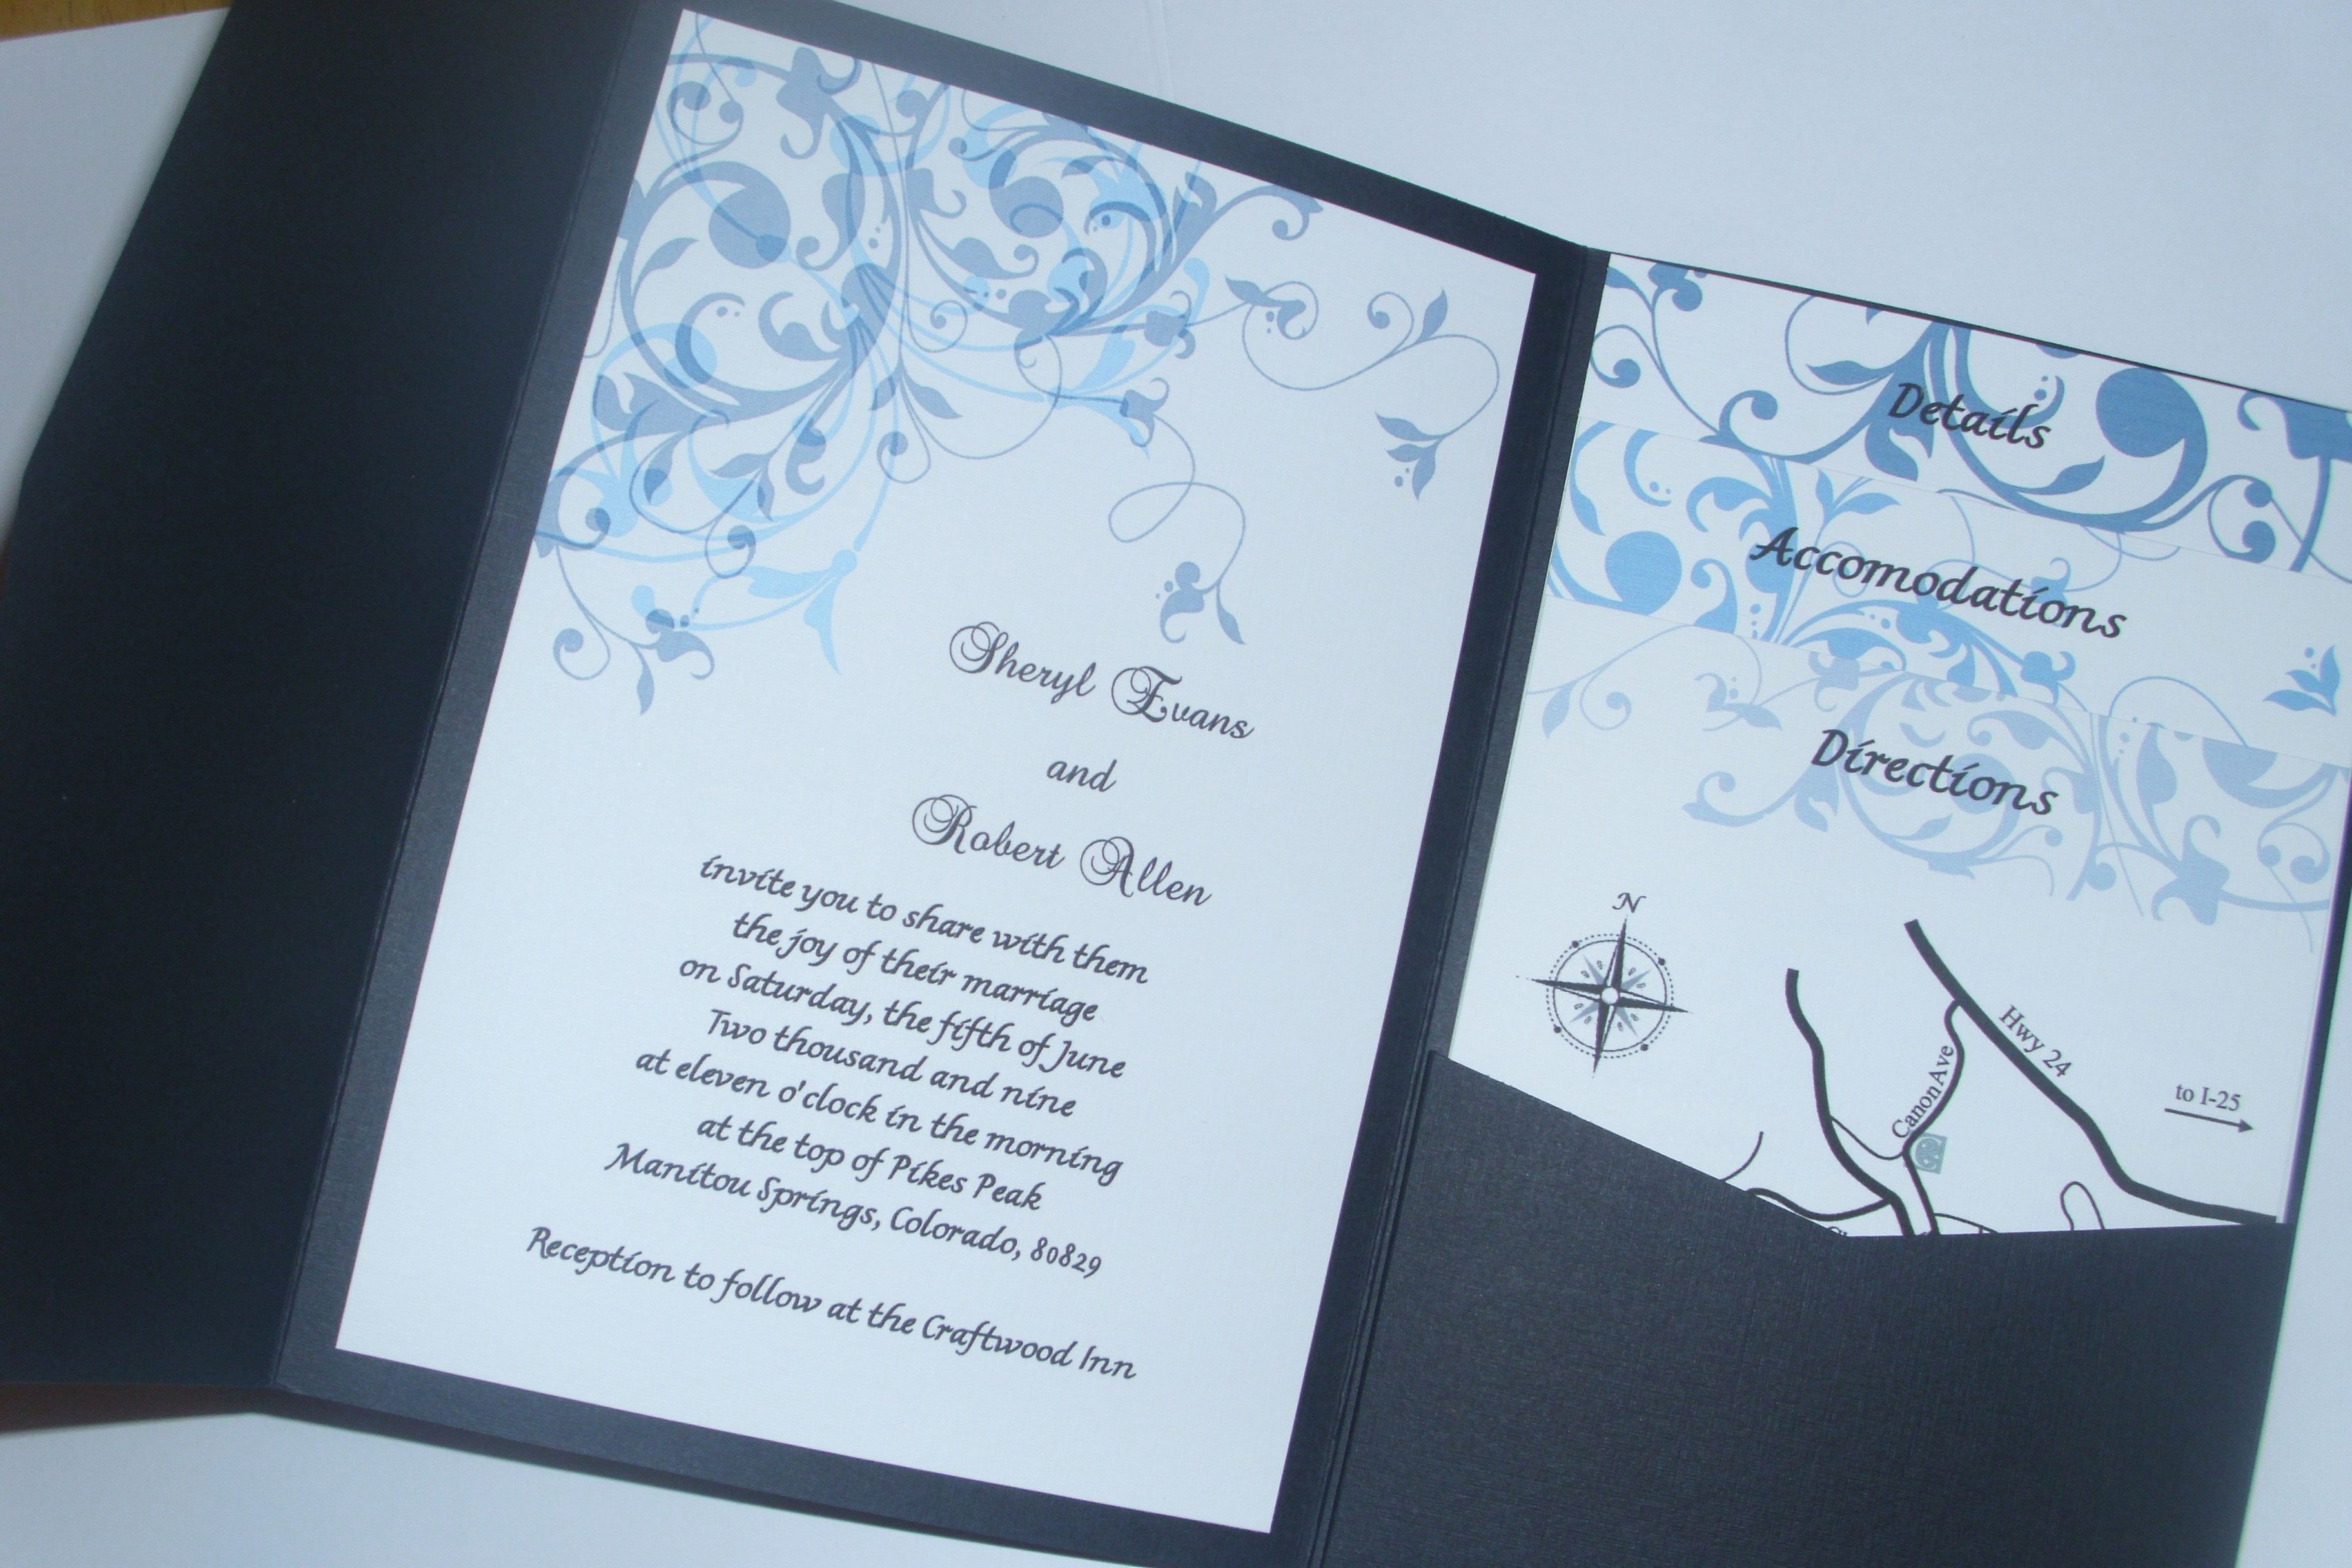 homemade+wedding+invitations+ideas | Homemade Wedding Invitation ...